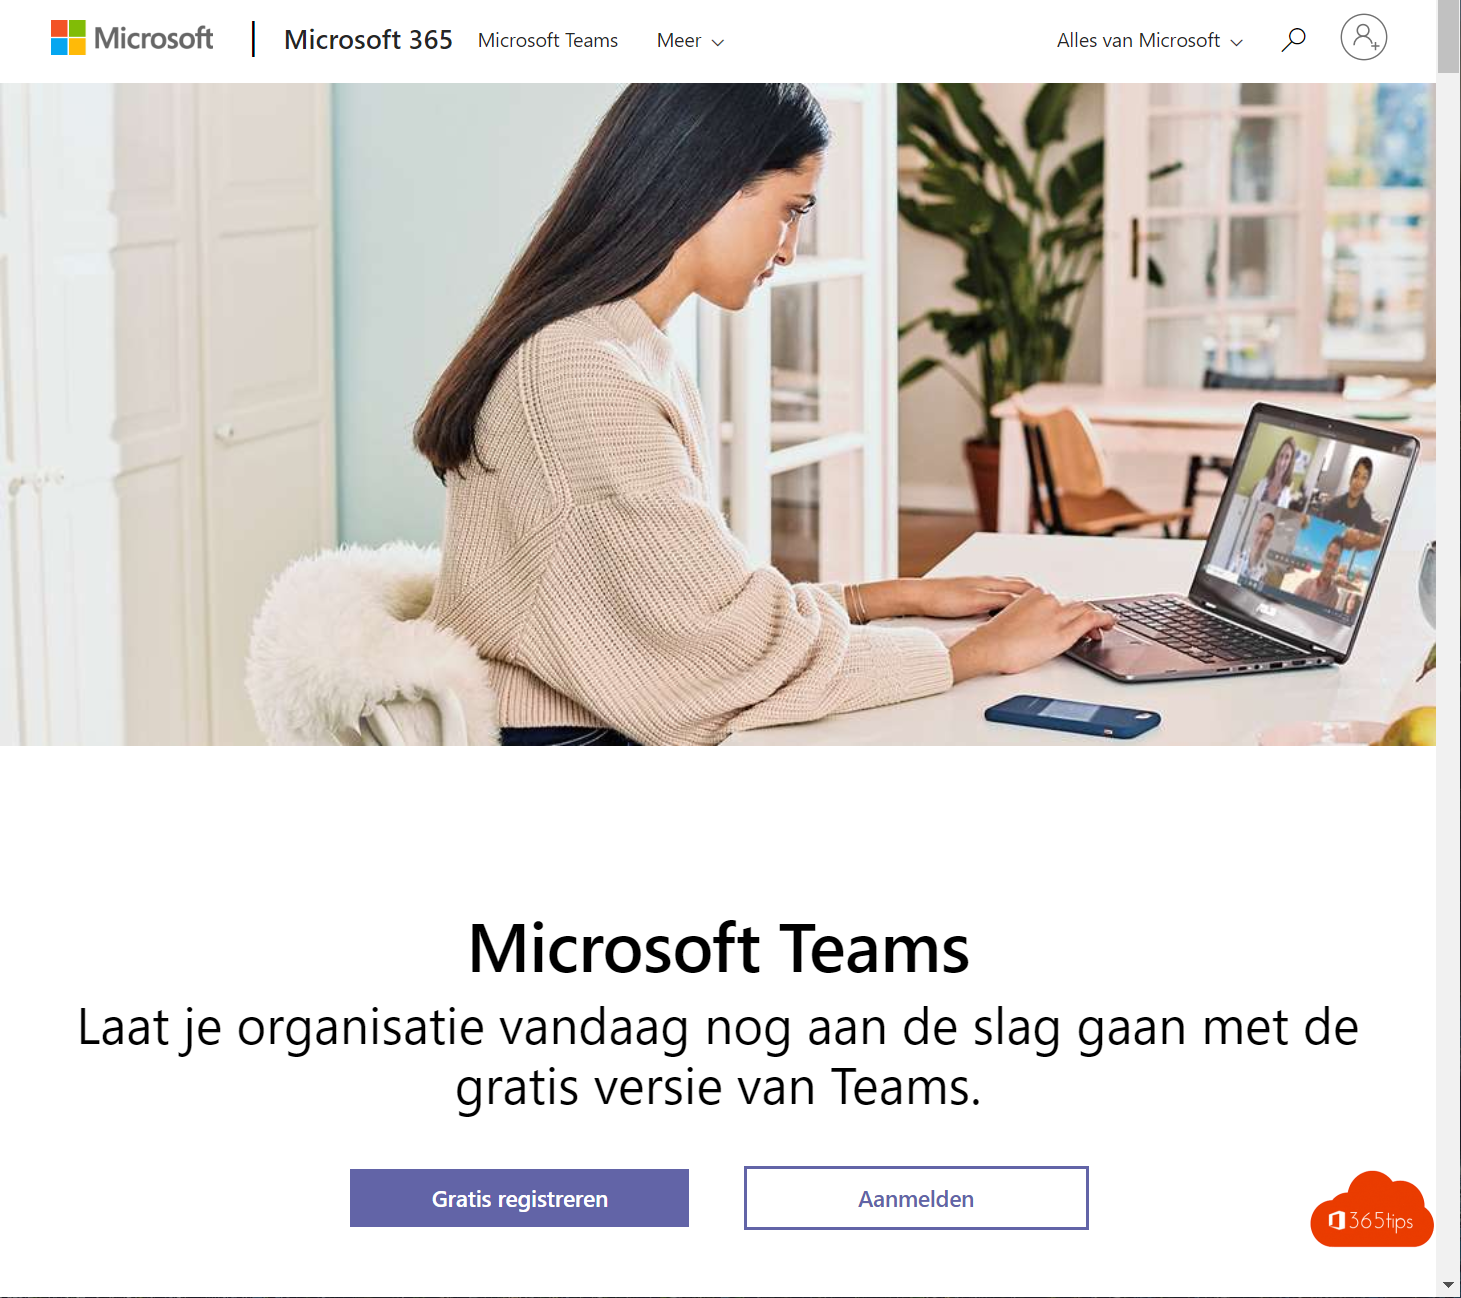 Is Microsoft Teams gratis?